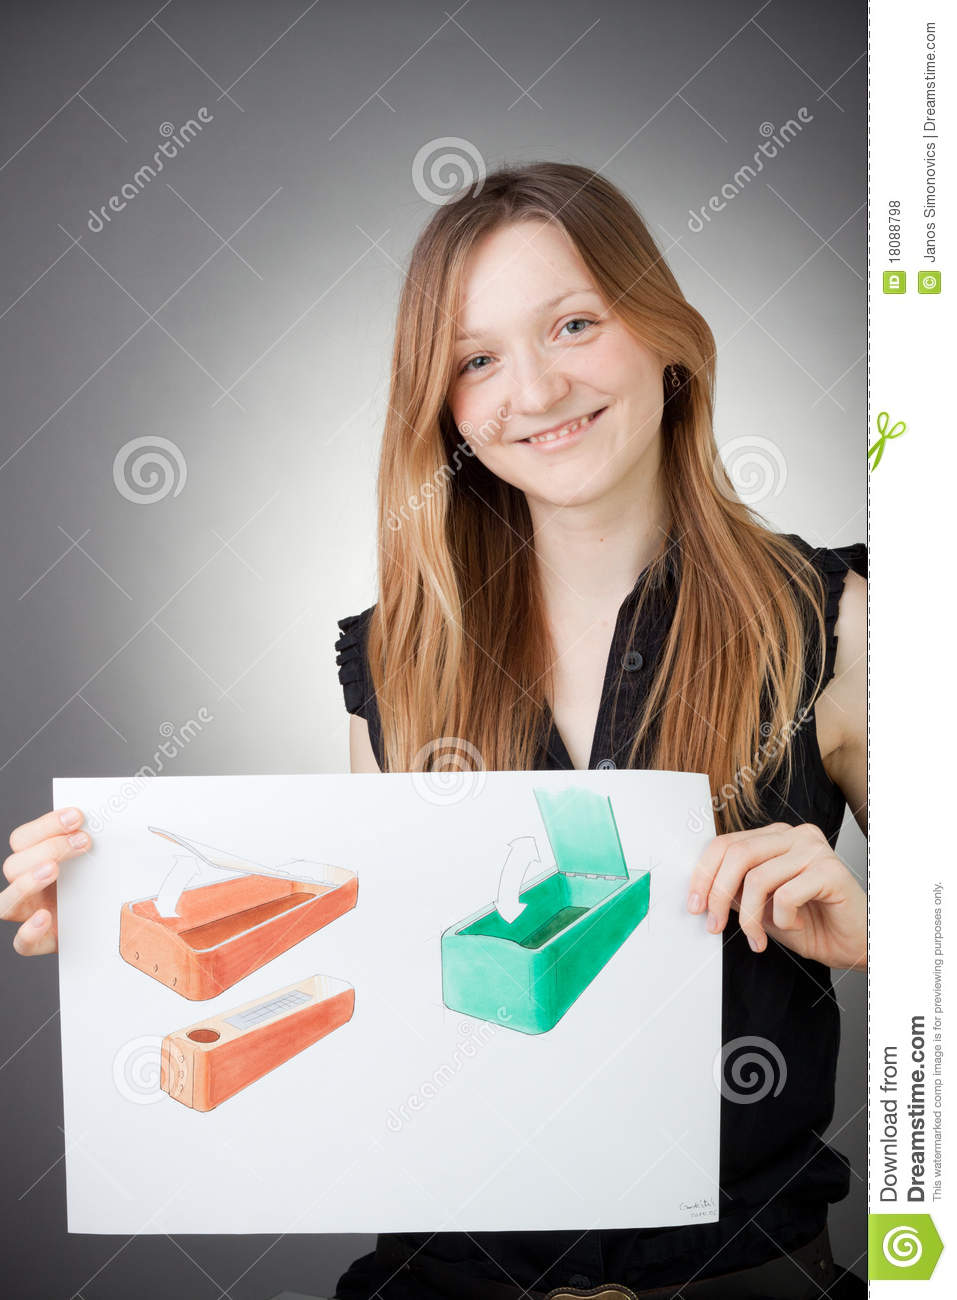 Young Design Engineer Woman Shows a Design Plan